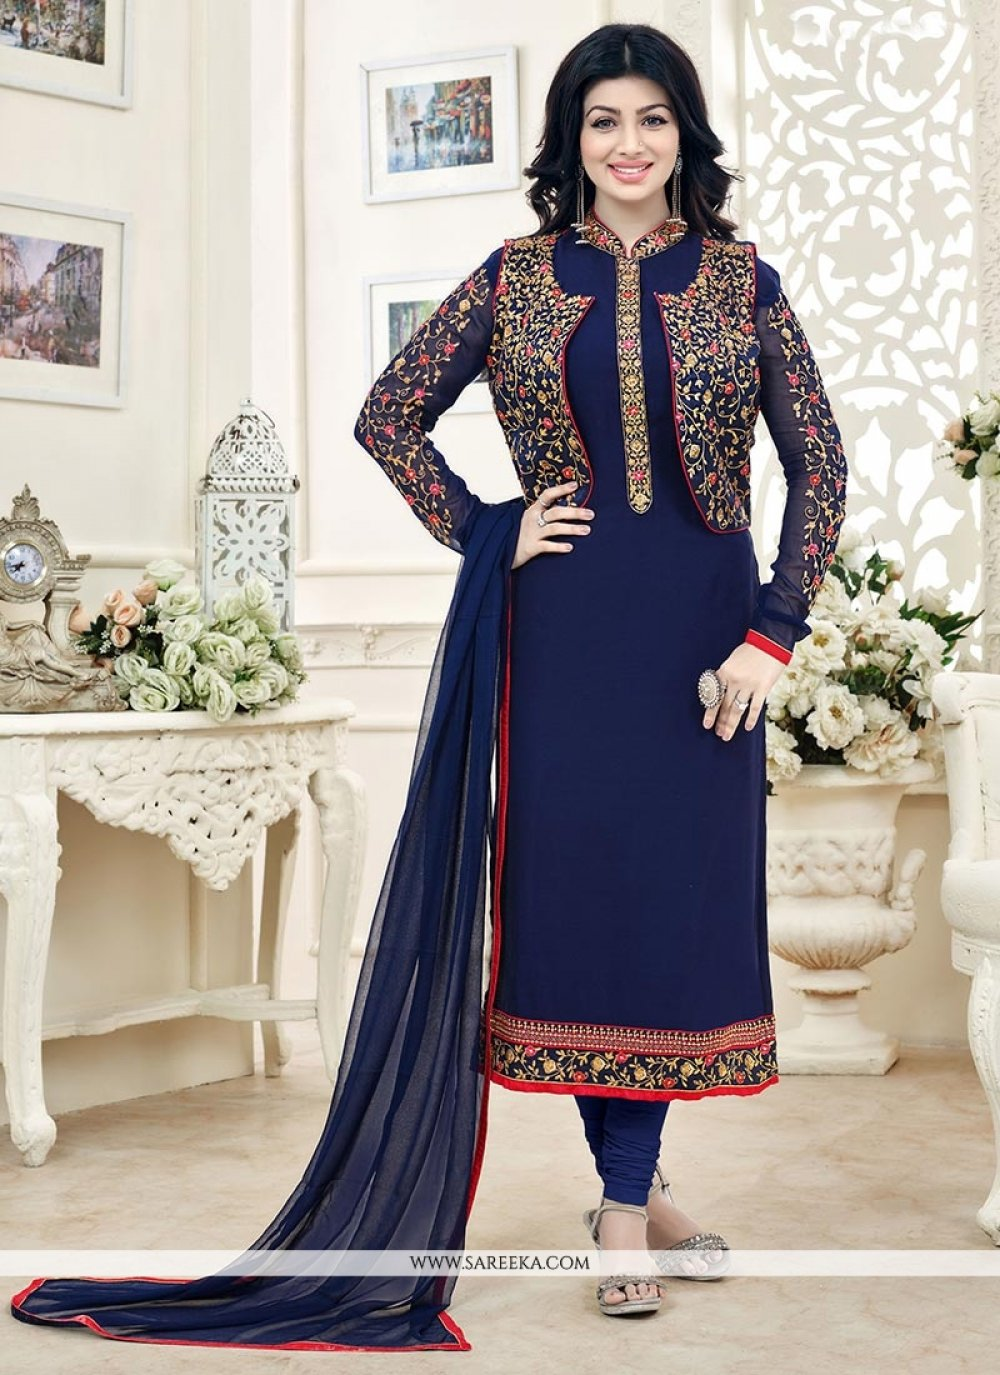 Ayesha Takia Faux Georgette Lace Work Jacket Style Suit